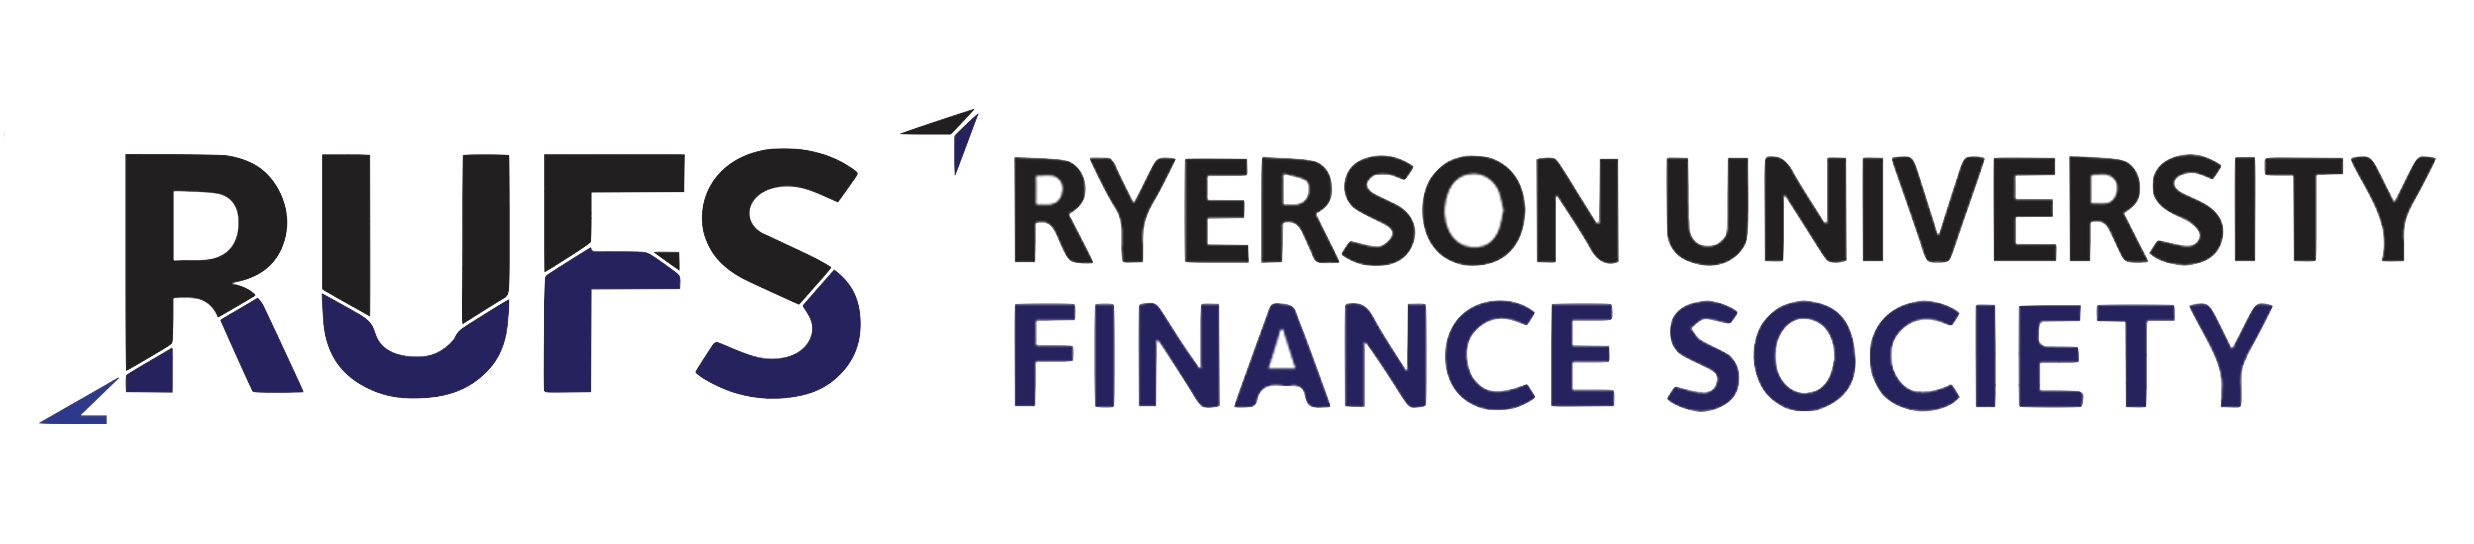 Ryerson University Finance Society